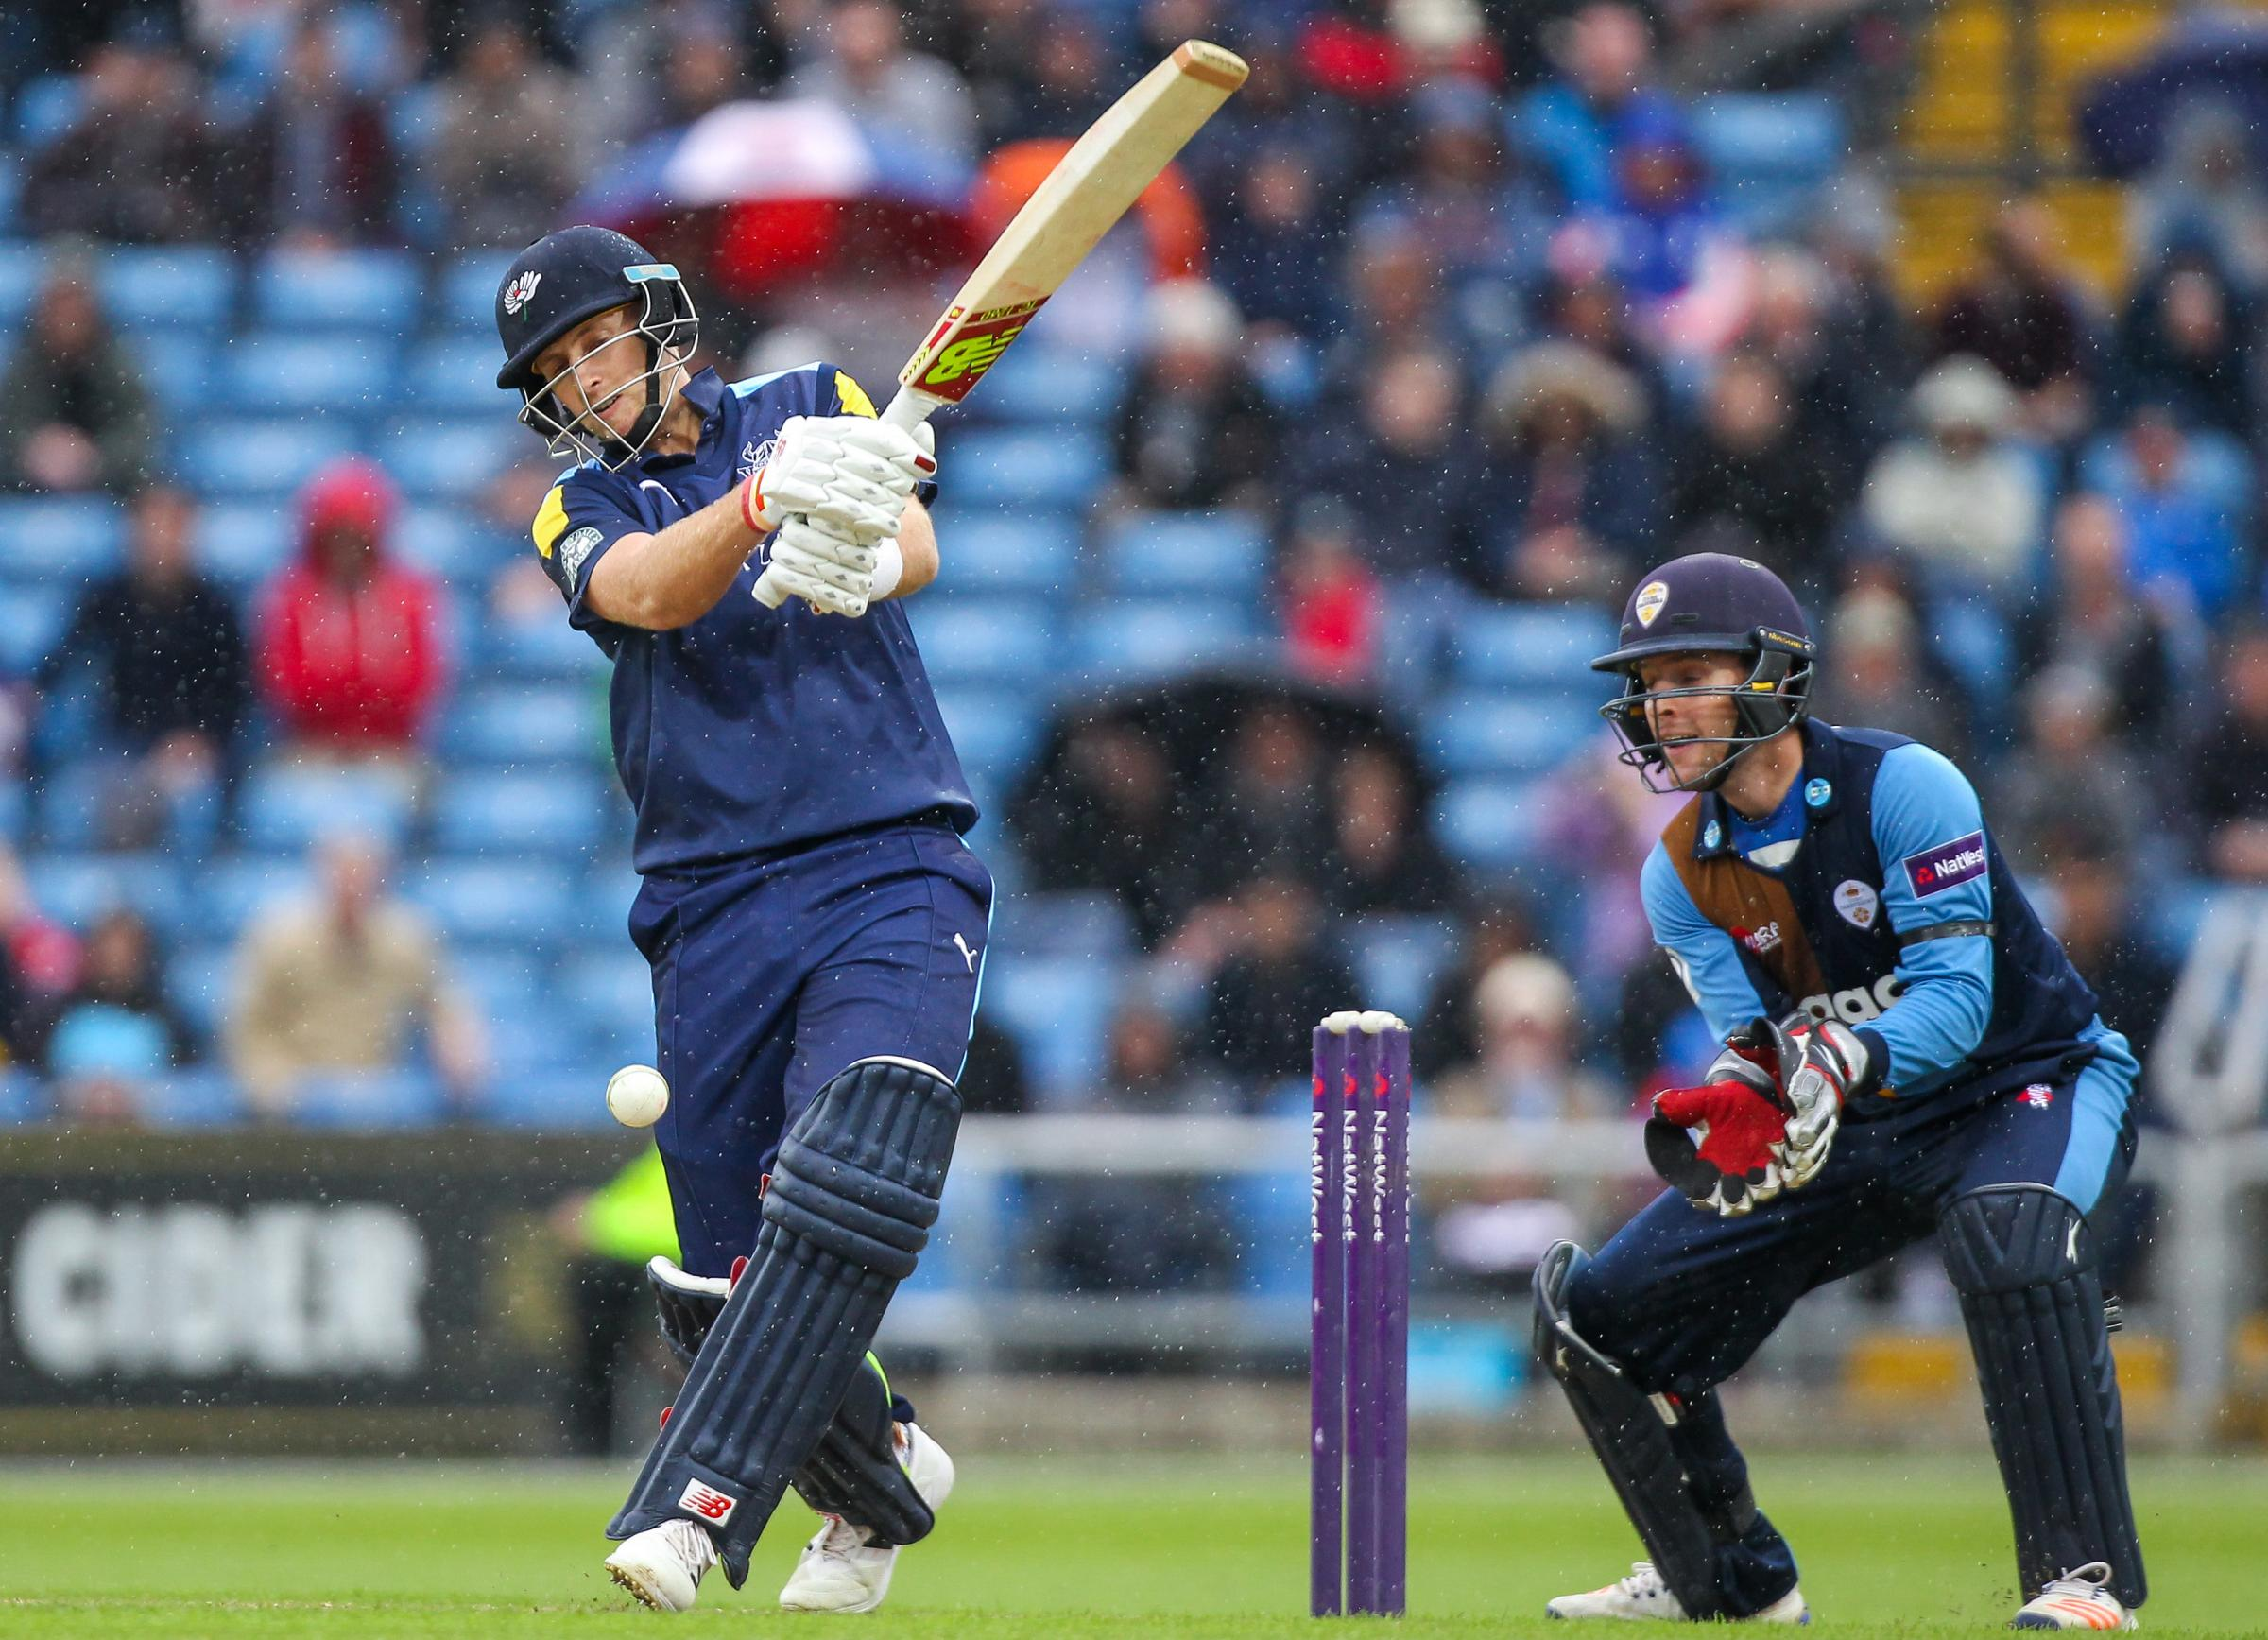 Joe Root was in fine form as Yorkshire won their Royal London one-day Cup opener